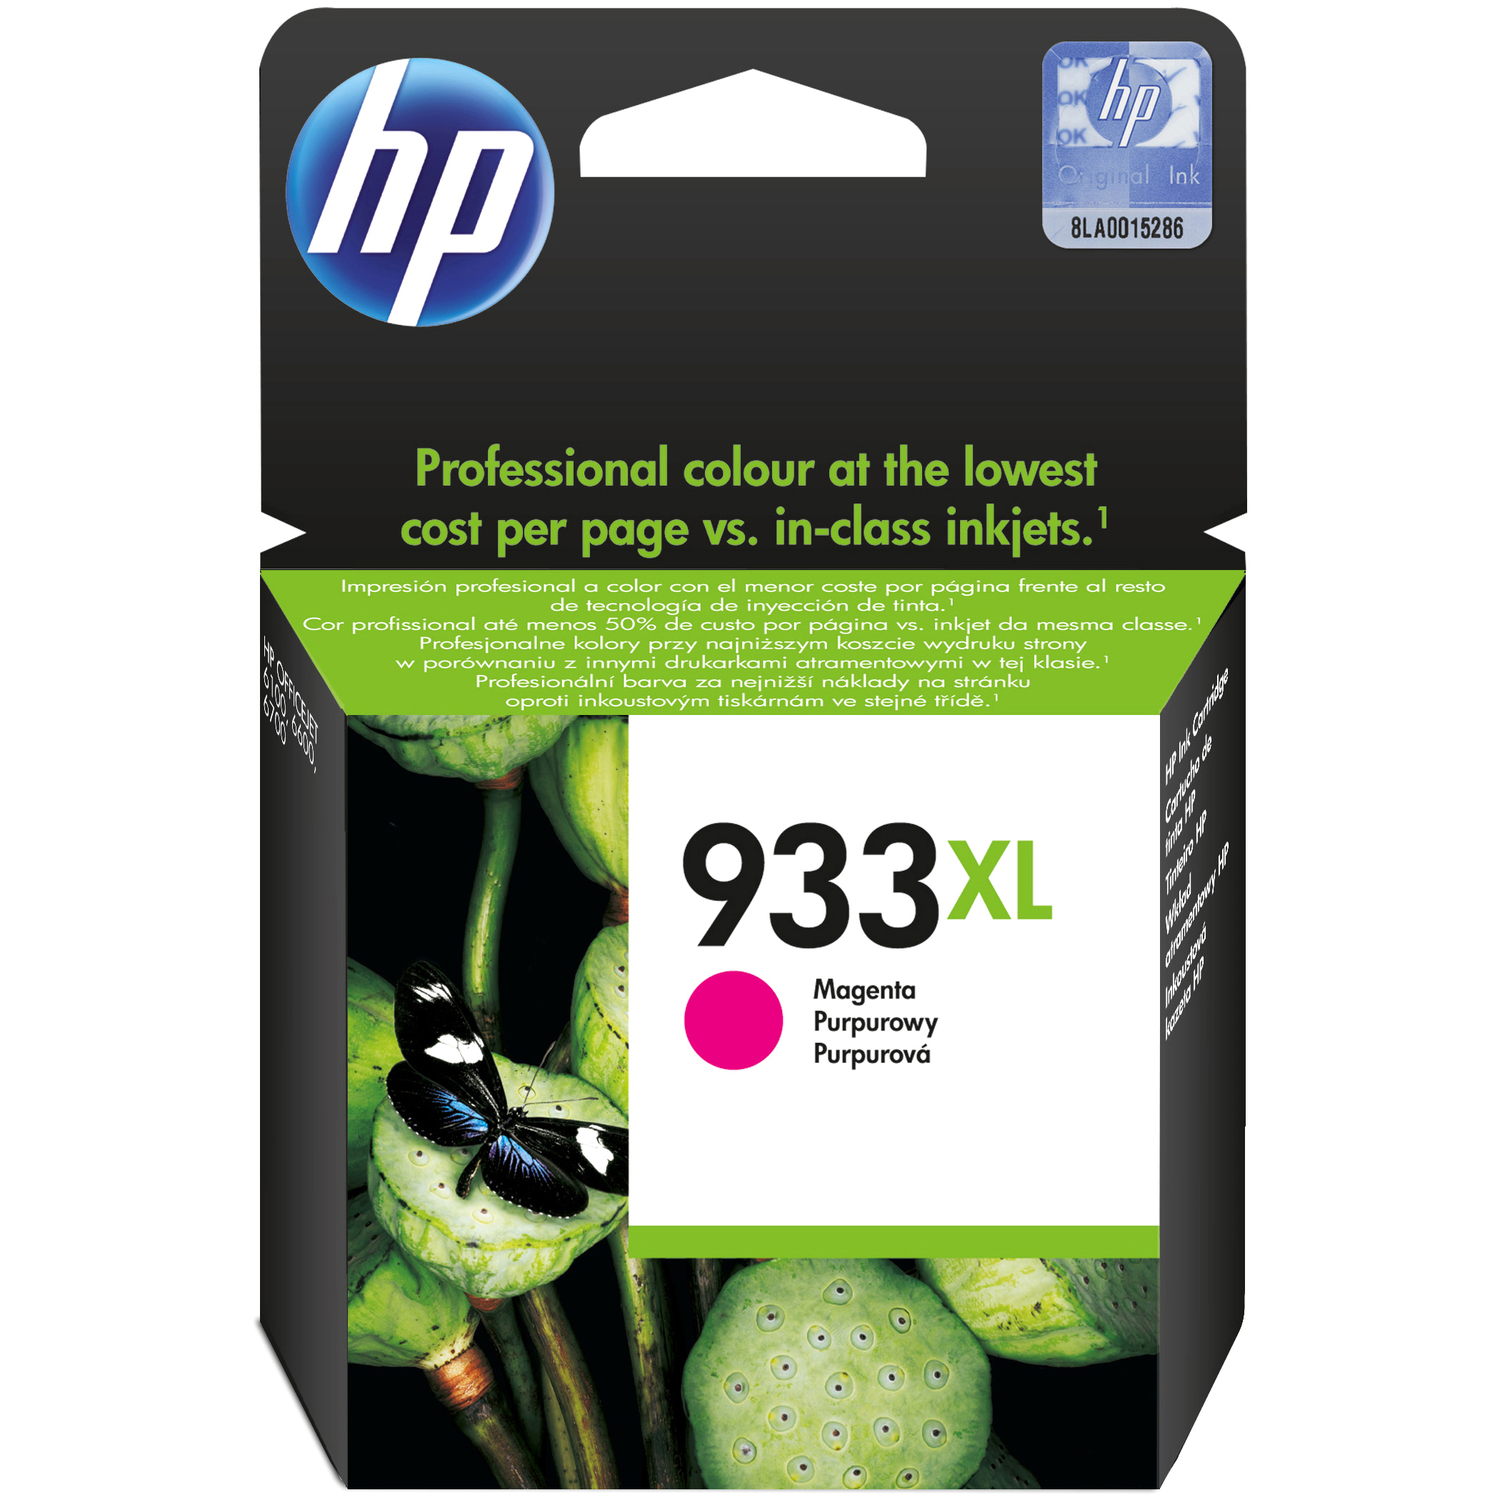 HP 933XL Magenta Ink Cartridge - CN055AE#301